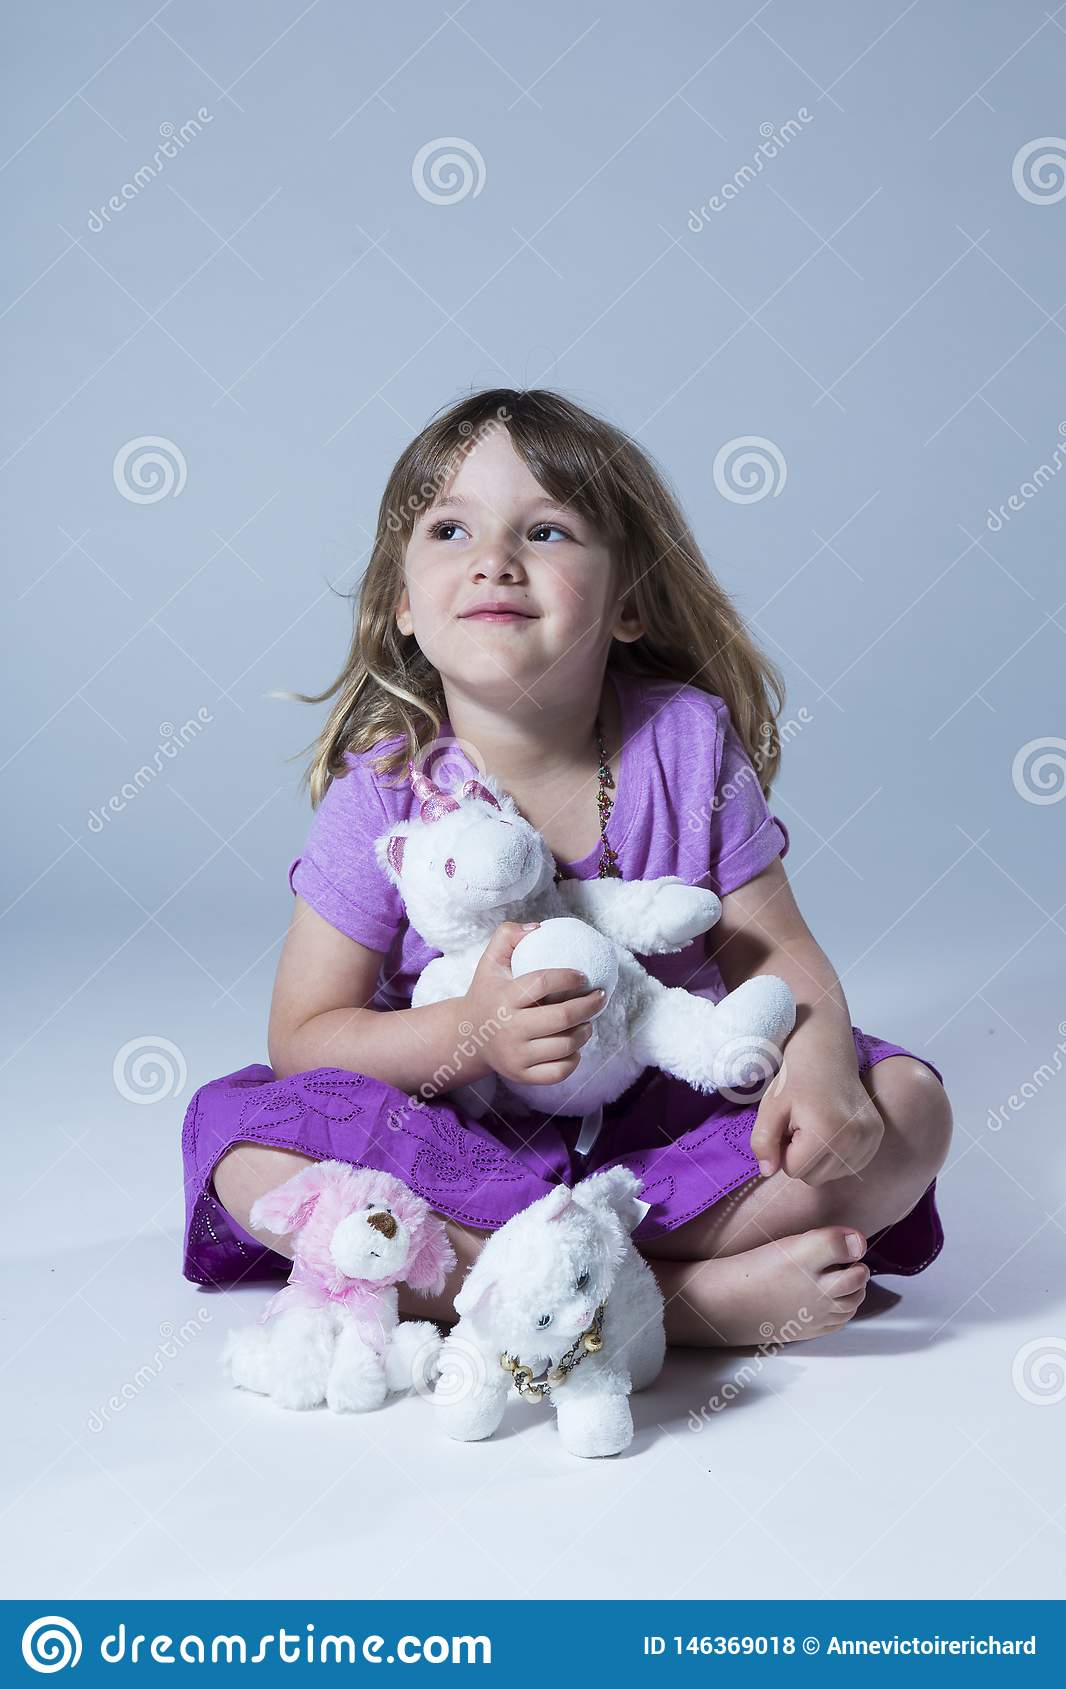 Vertical photo of cute little girl in mauve top and purple skirt sitting cross-legged